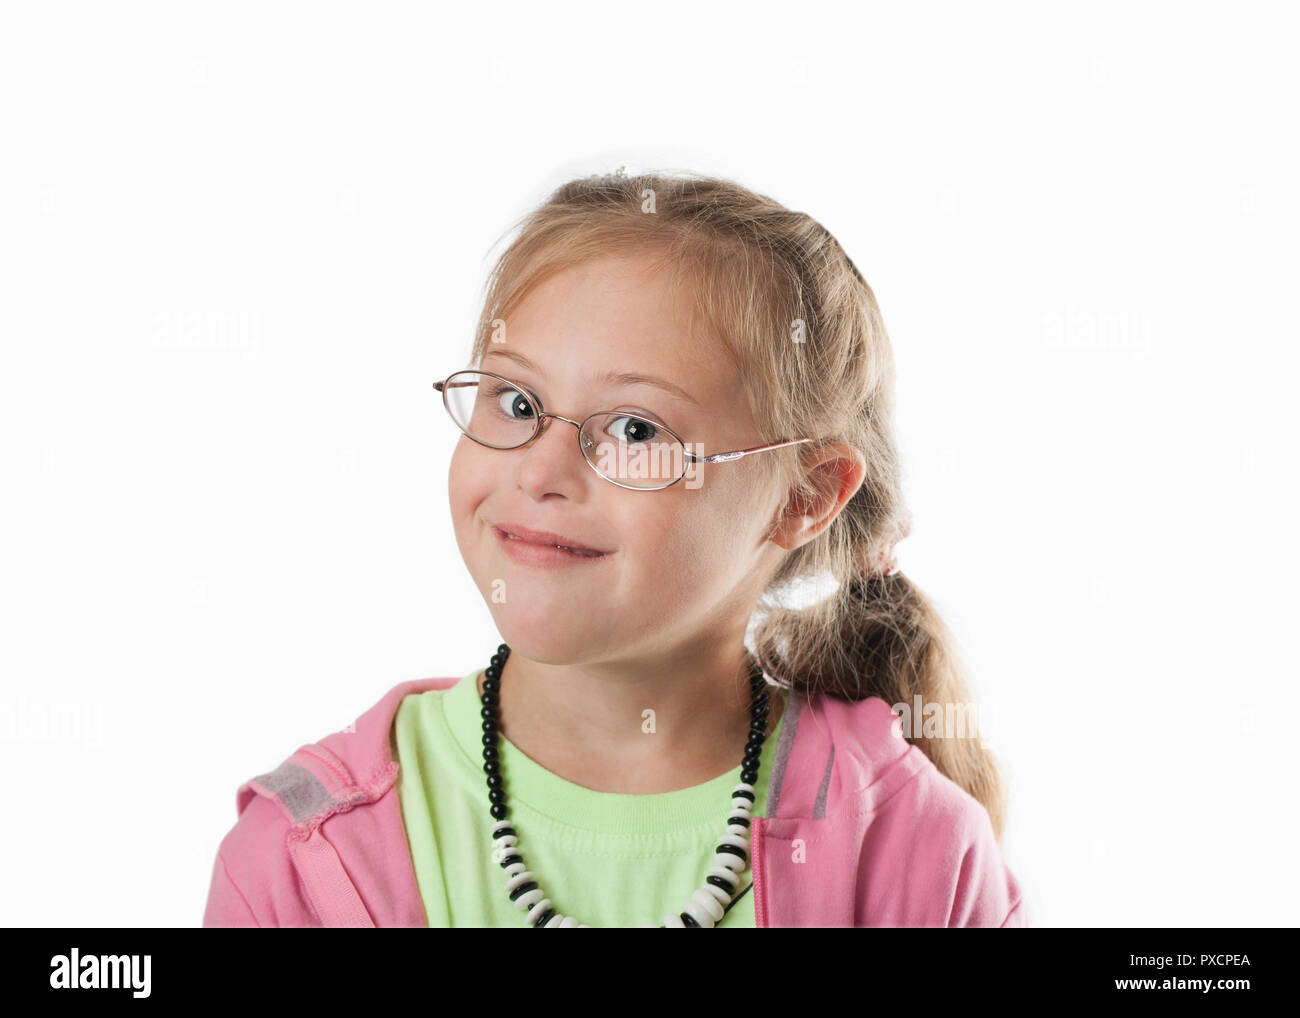 Portrait of a girl with special needs on a white background - Stock Image